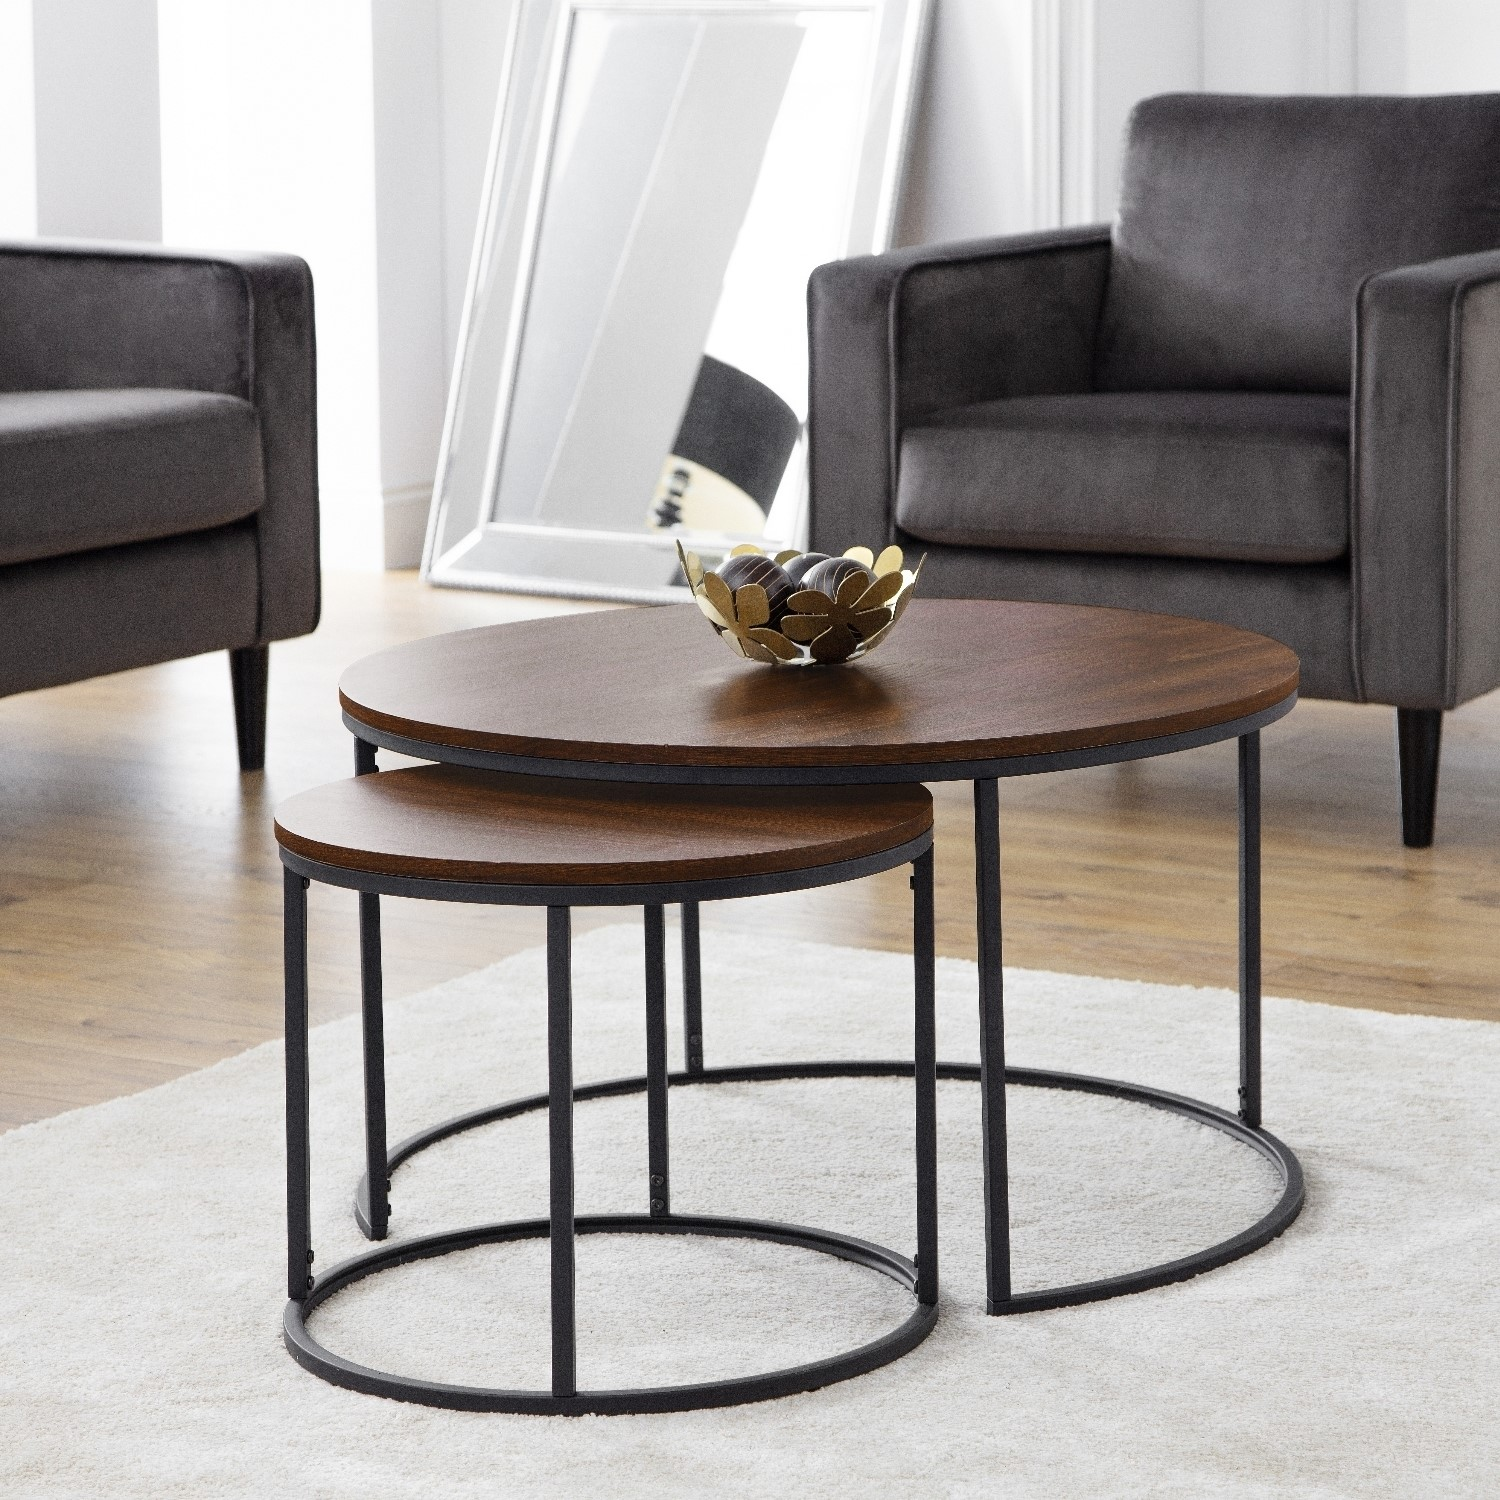 Julian Bowen Bellini Round Nesting Coffee Table